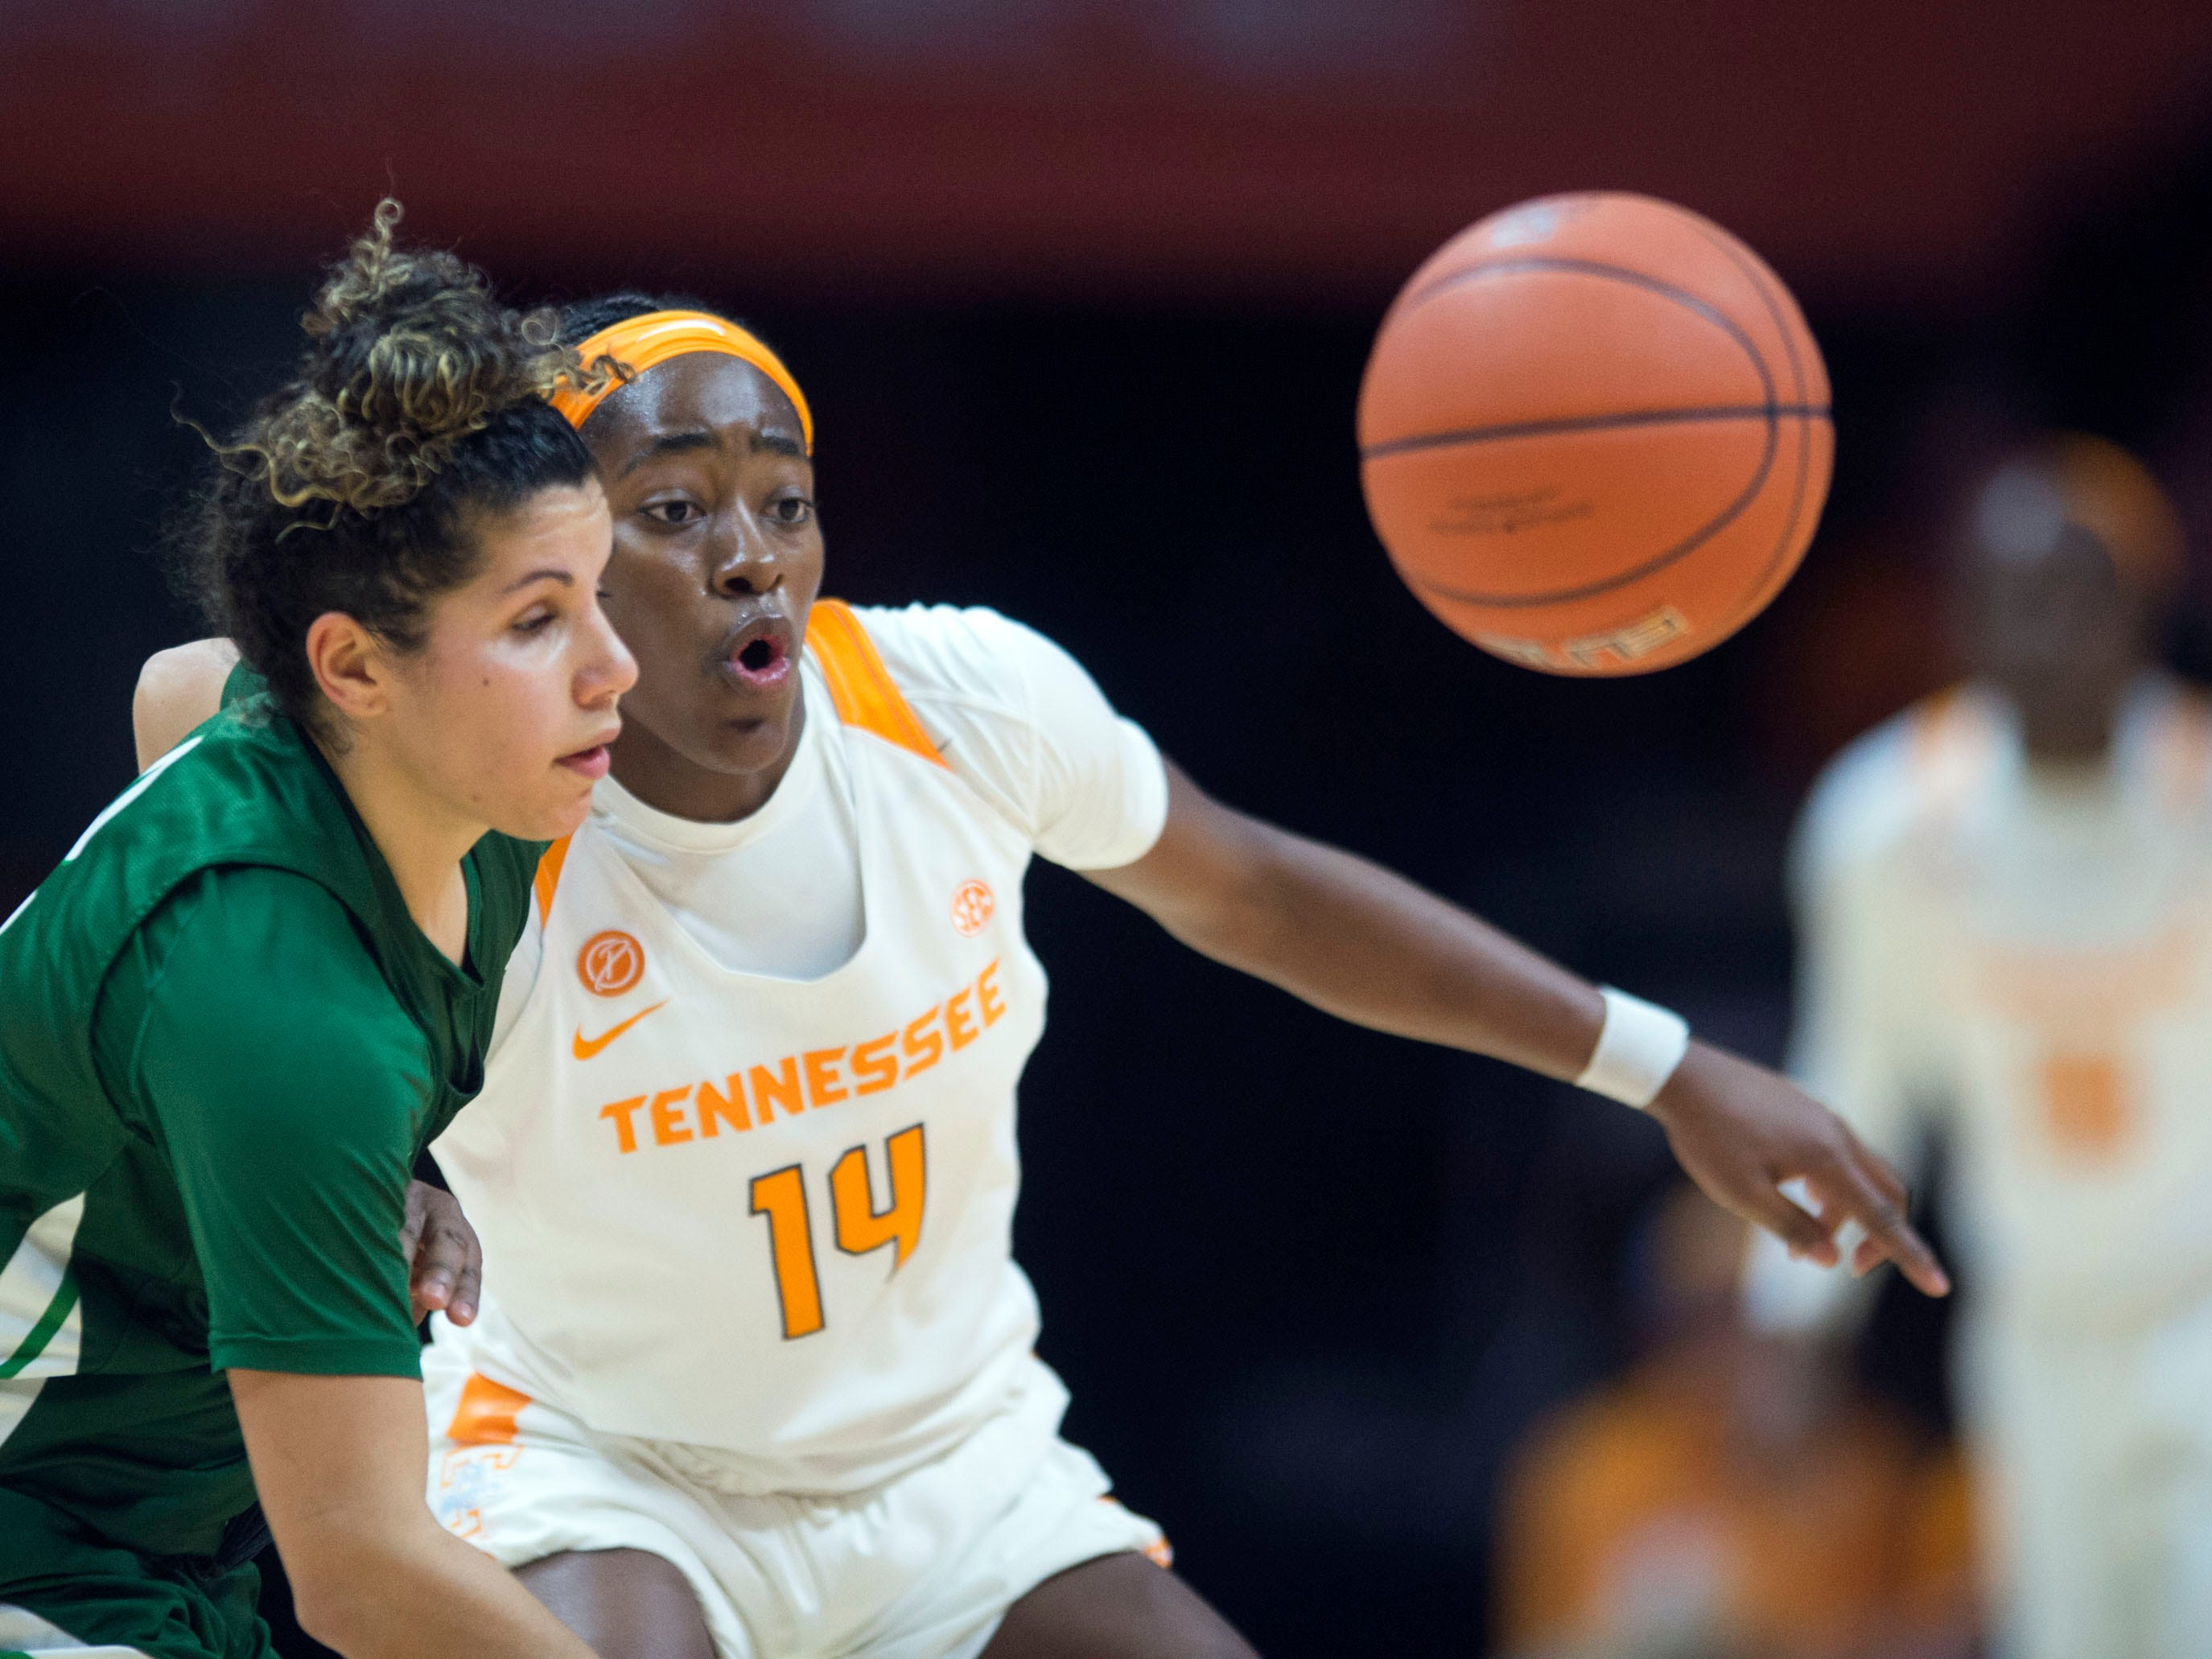 Tennessee's Zaay Green (14) and Stetson's McKenna Beach (2) chase after the ball at Thompson-Boling Arena on Wednesday, December 5, 2018.